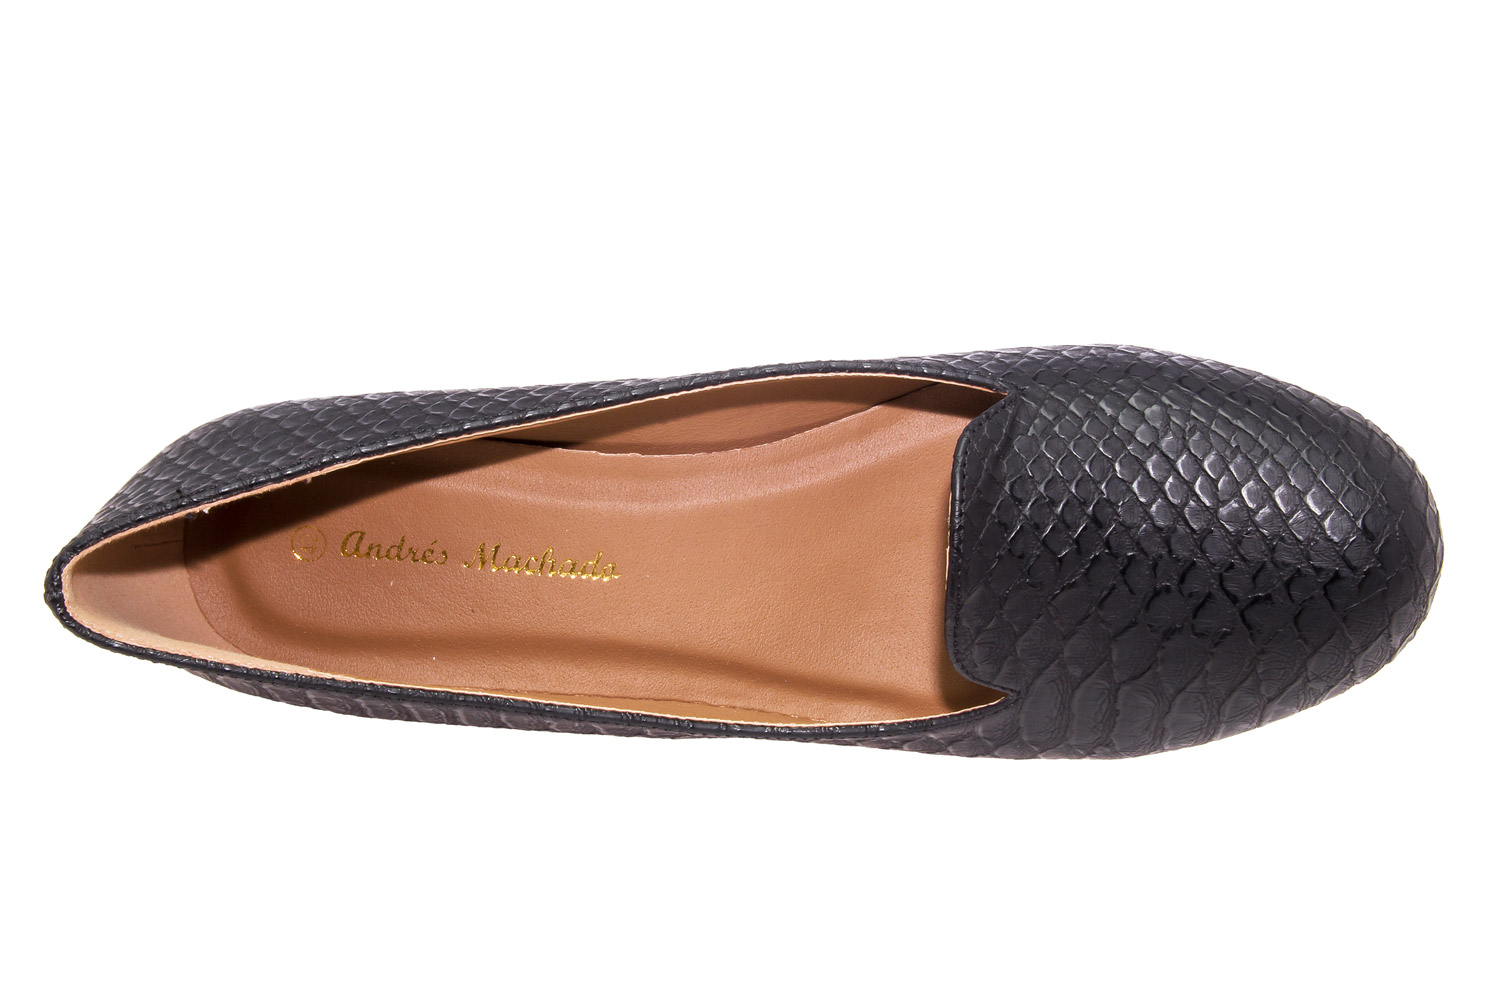 Slipper Tacon Serpiente Negro